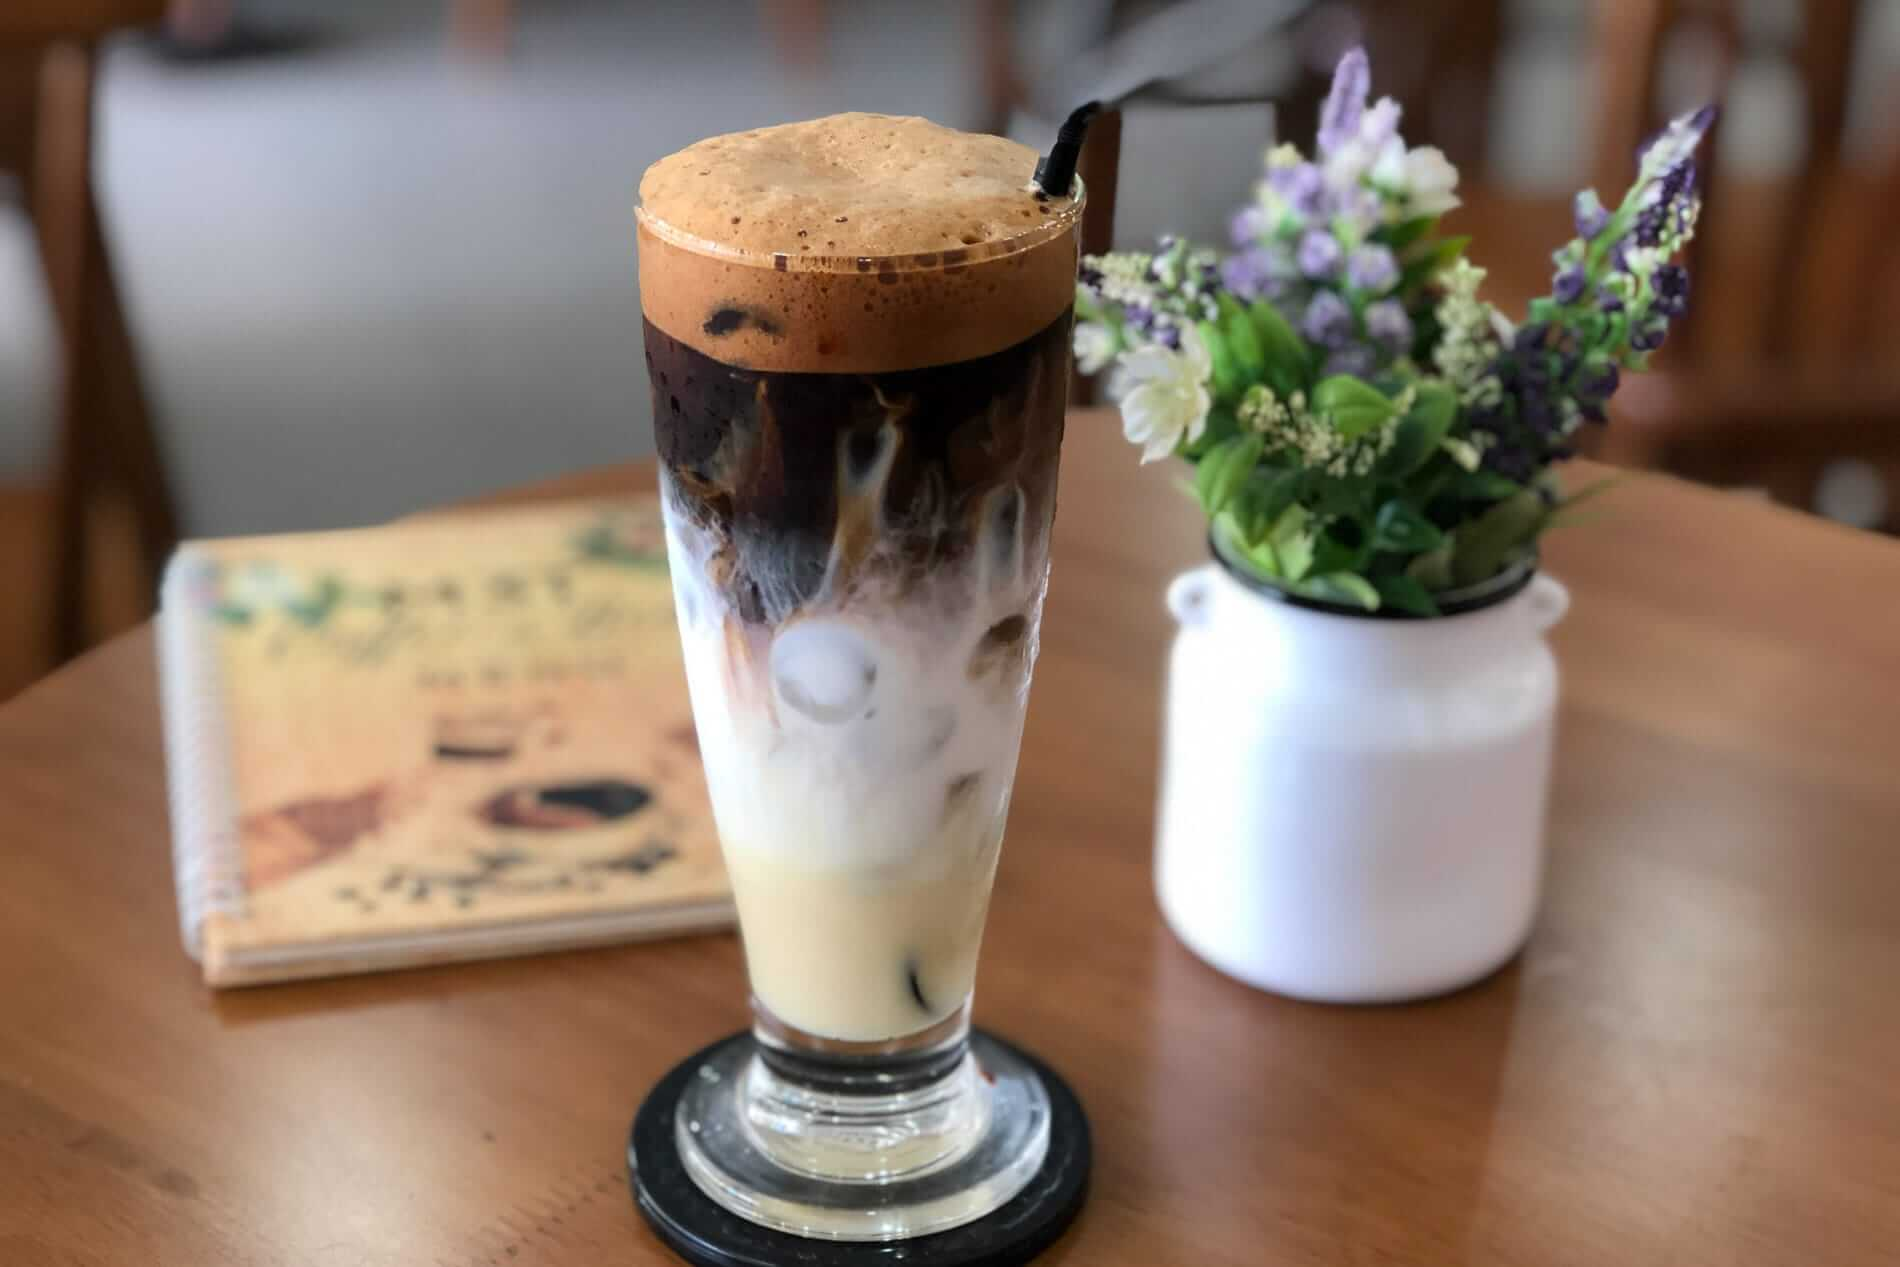 Three layered Vietnamese coffee with condensed milk in a cafe in Da Nang